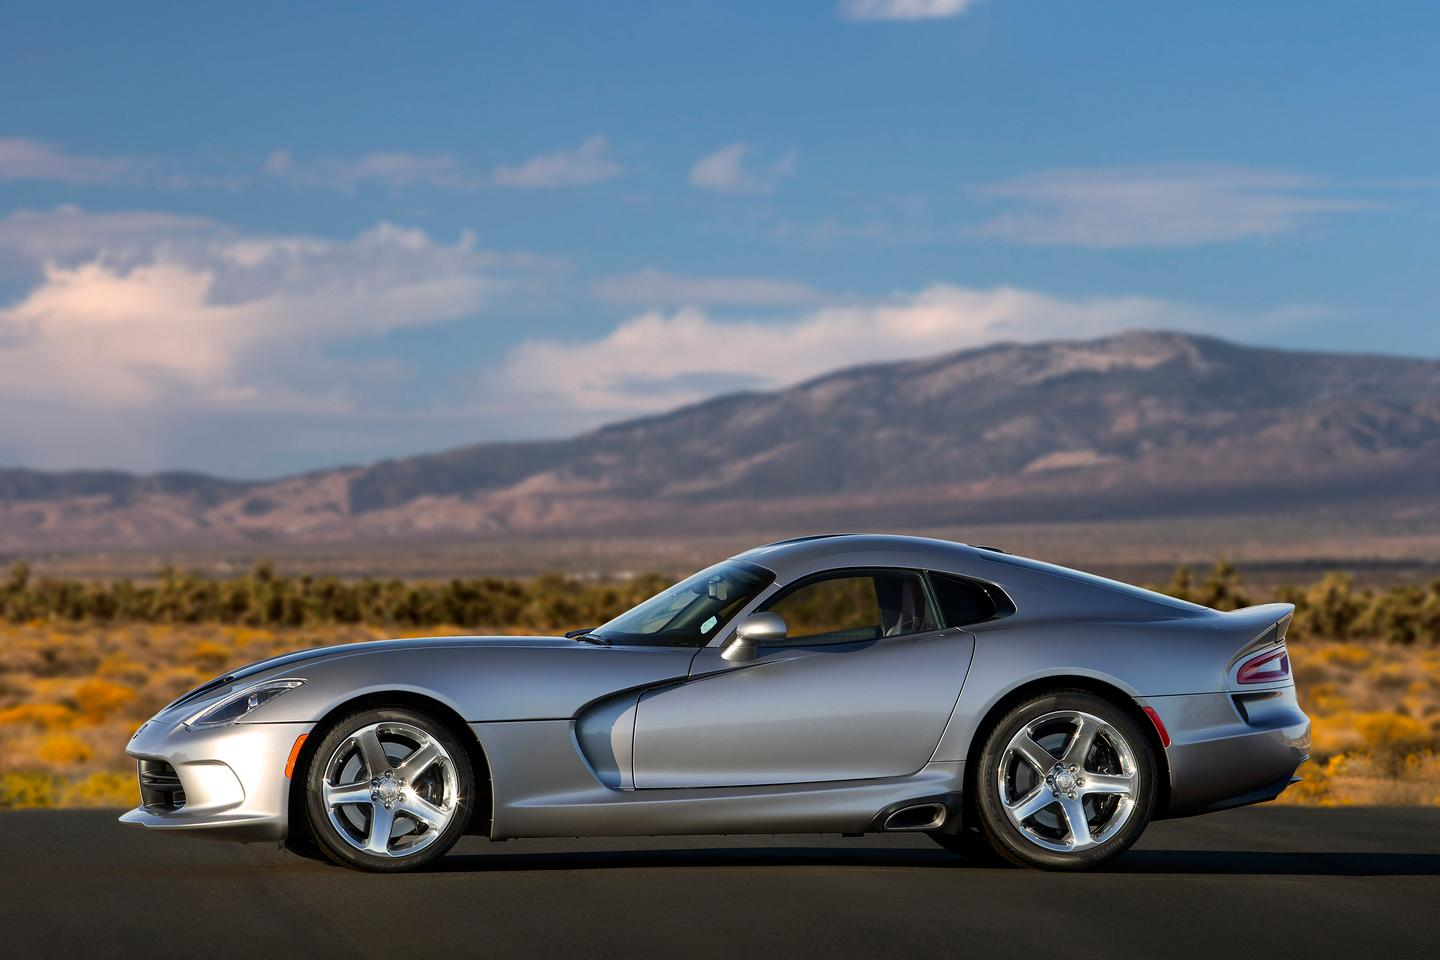 The 2015 Viper comes in three trim levels: base, GT and GTS